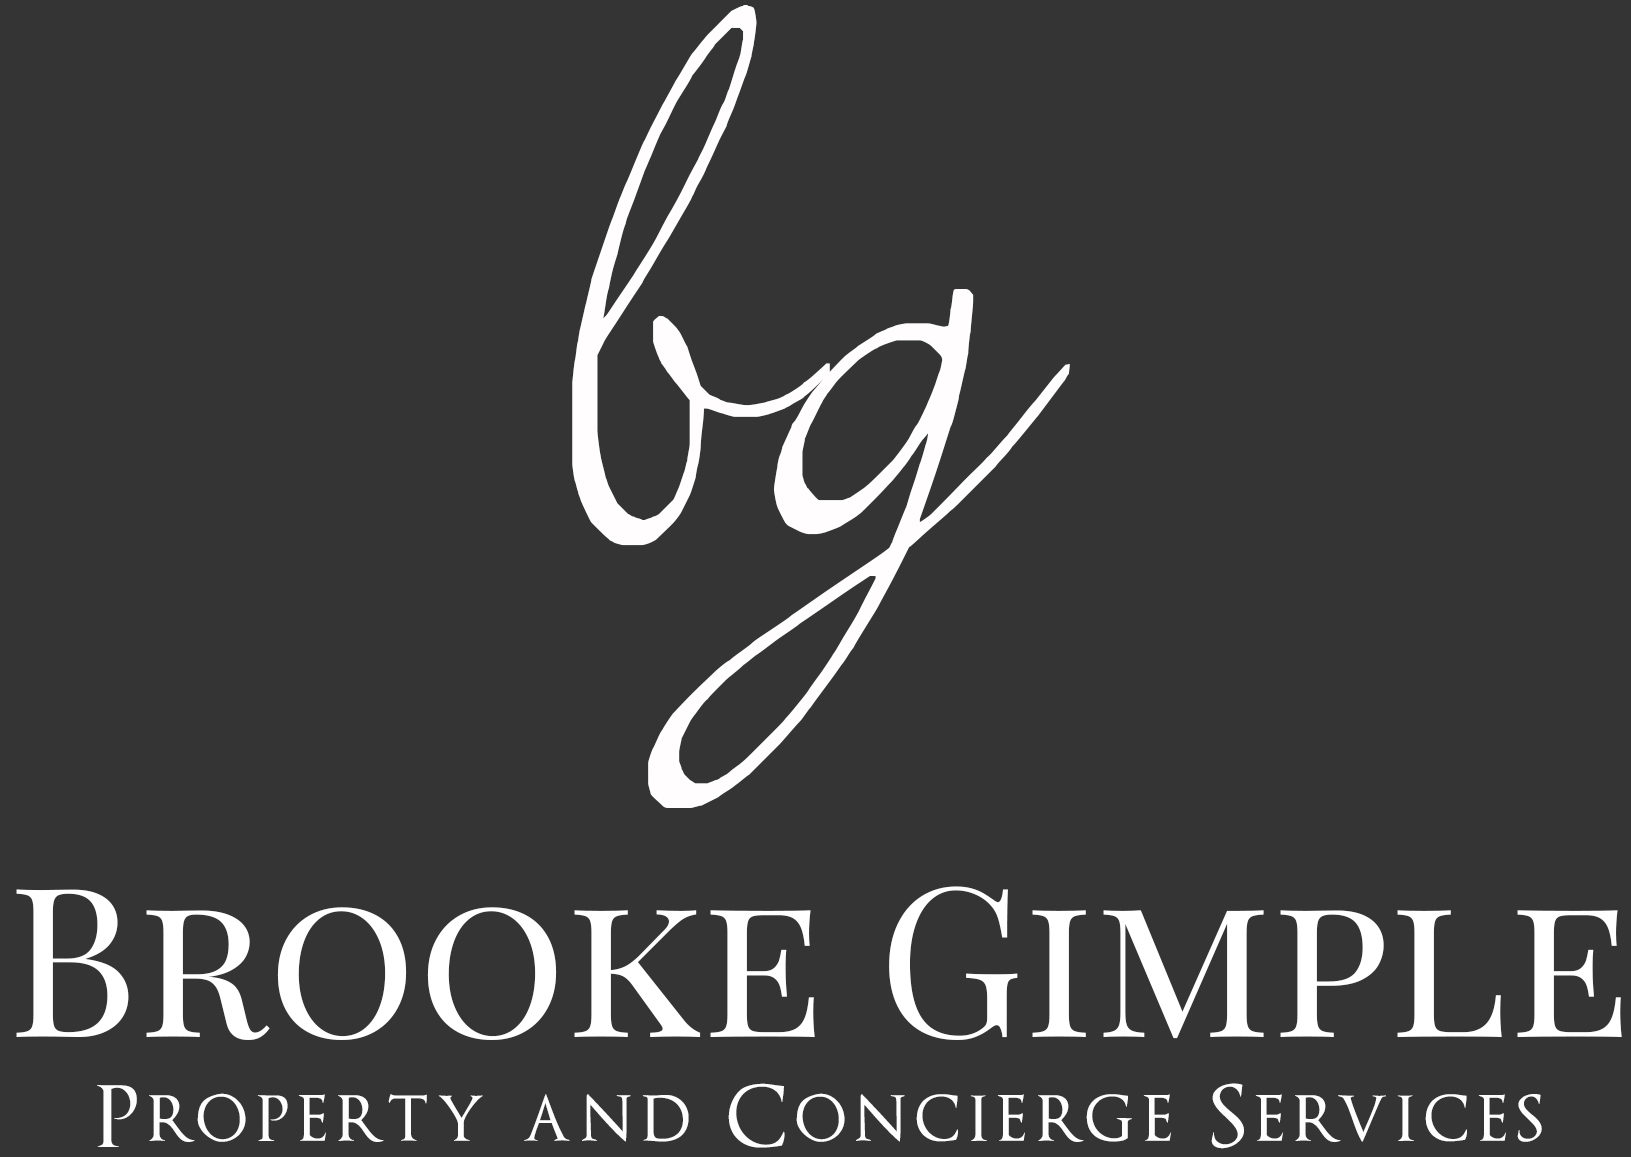 BG Property & Concierge Services LLC